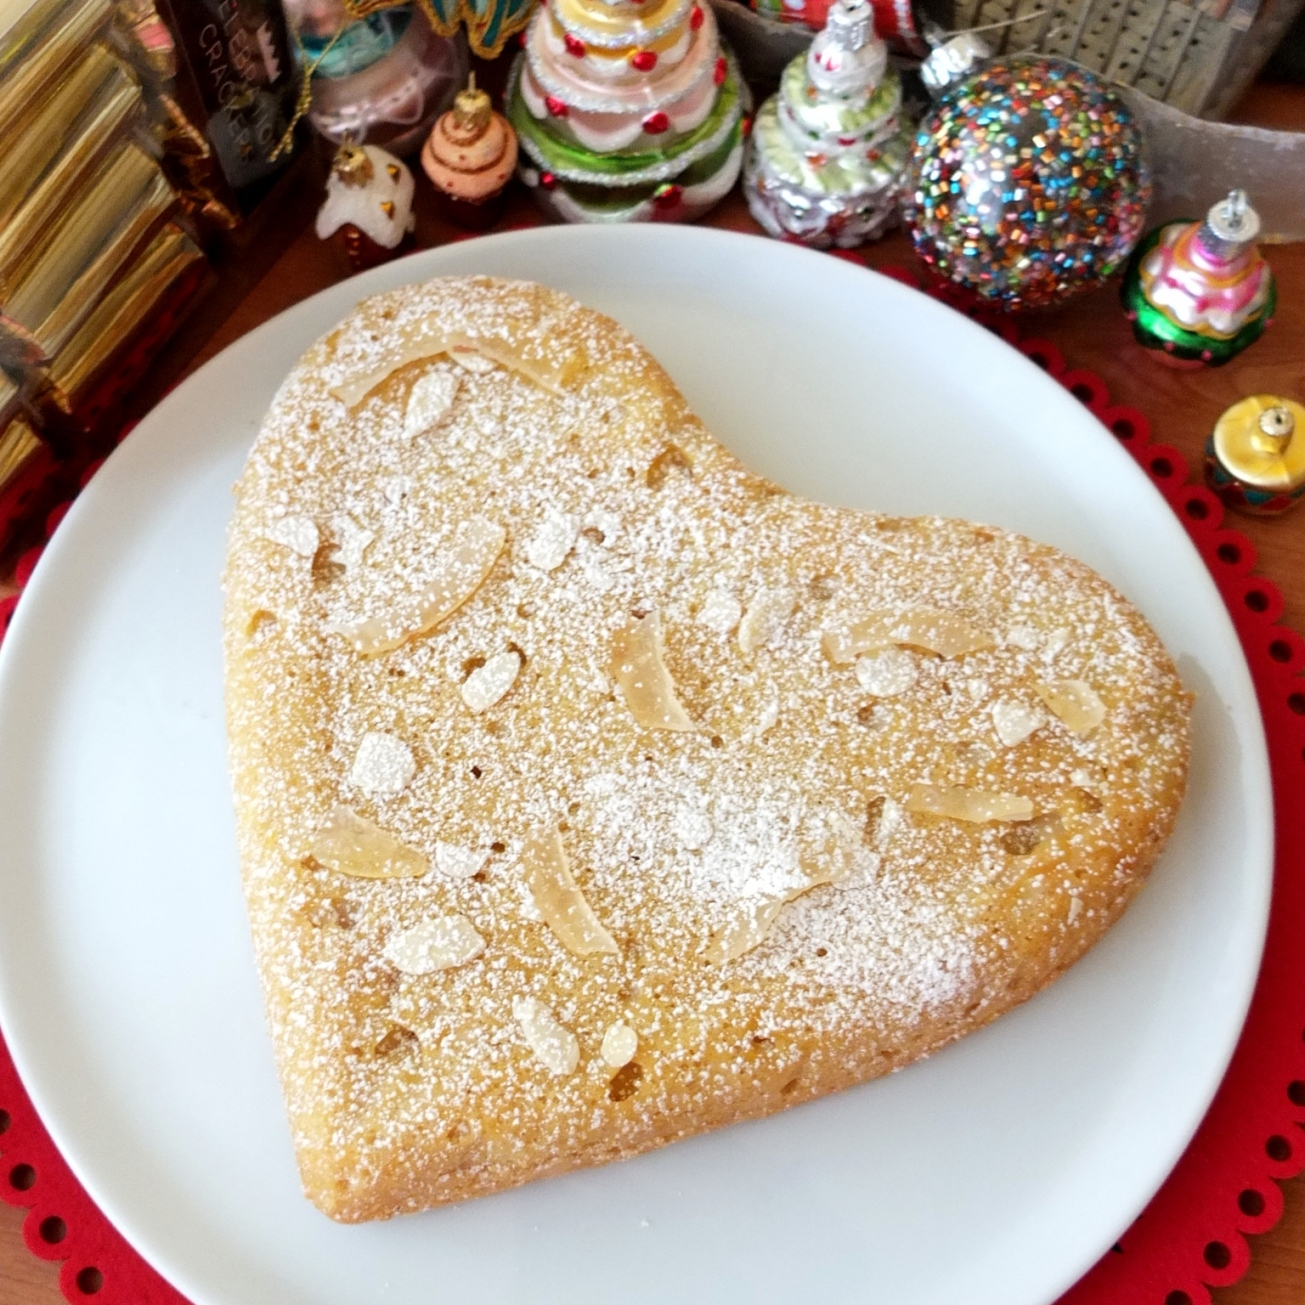 French flourless lemon almond cake